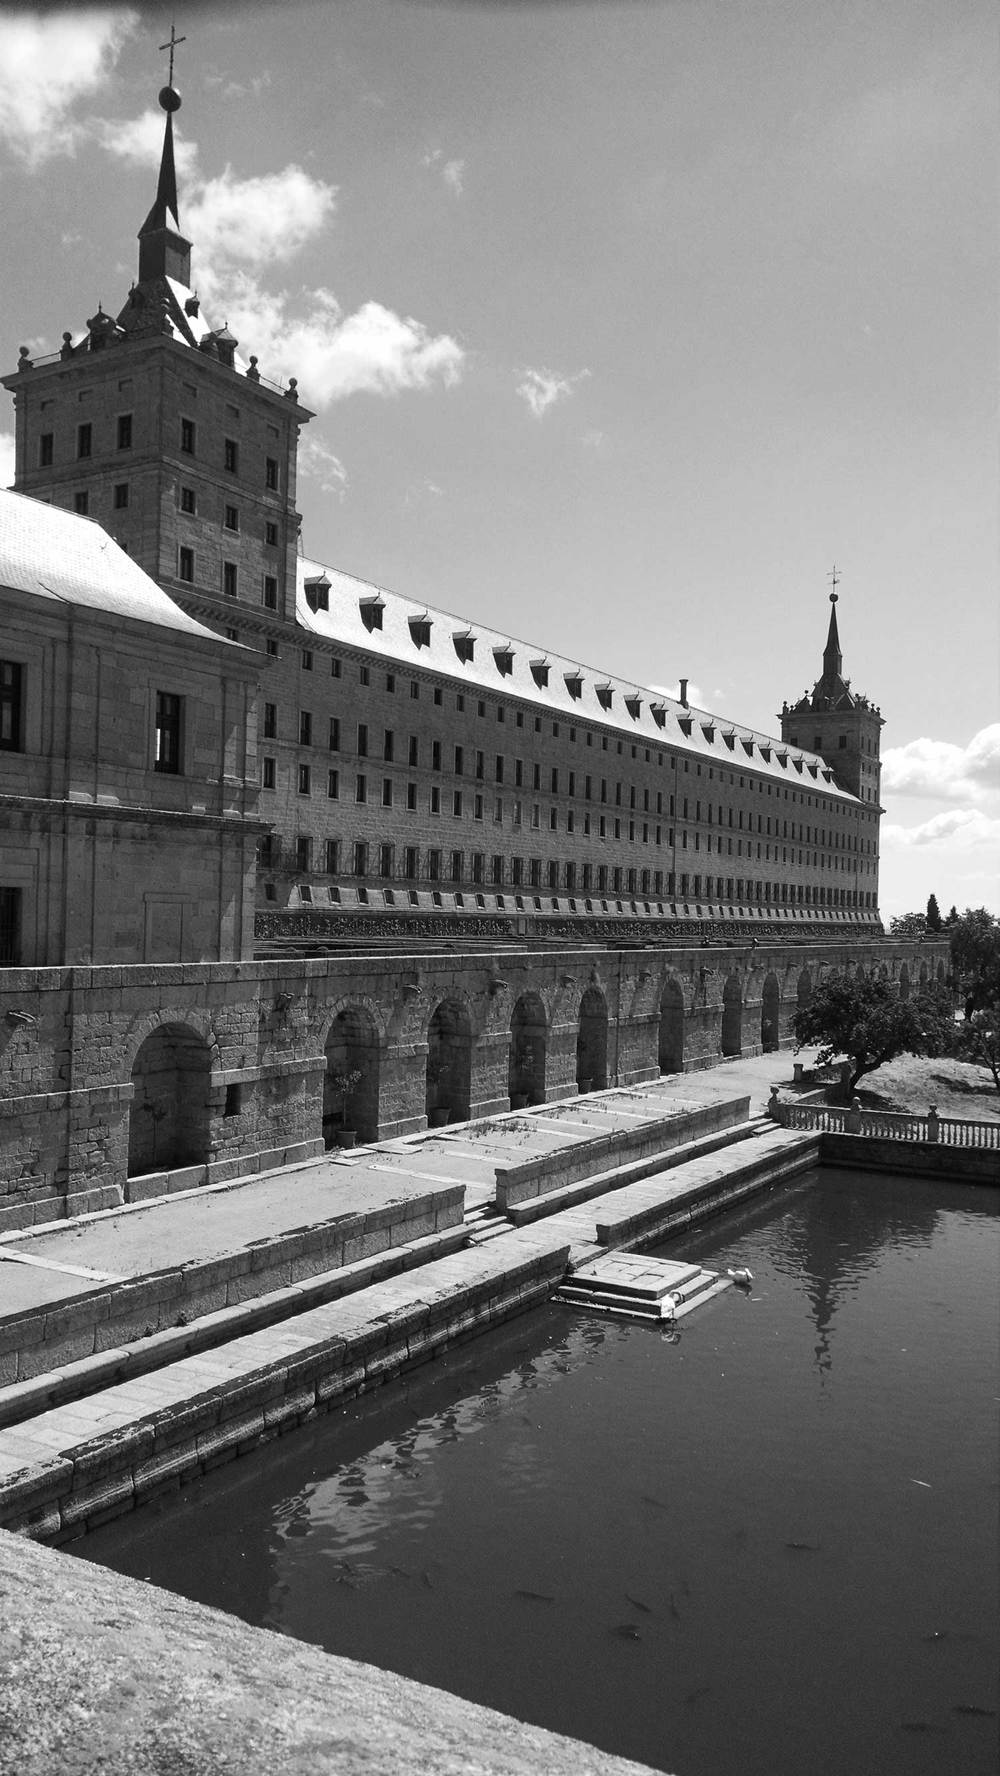 OG-monastery_el_escorial_Reflecting_Pond_Madrid_Spain-062015-BW-WEB-1500.jpg